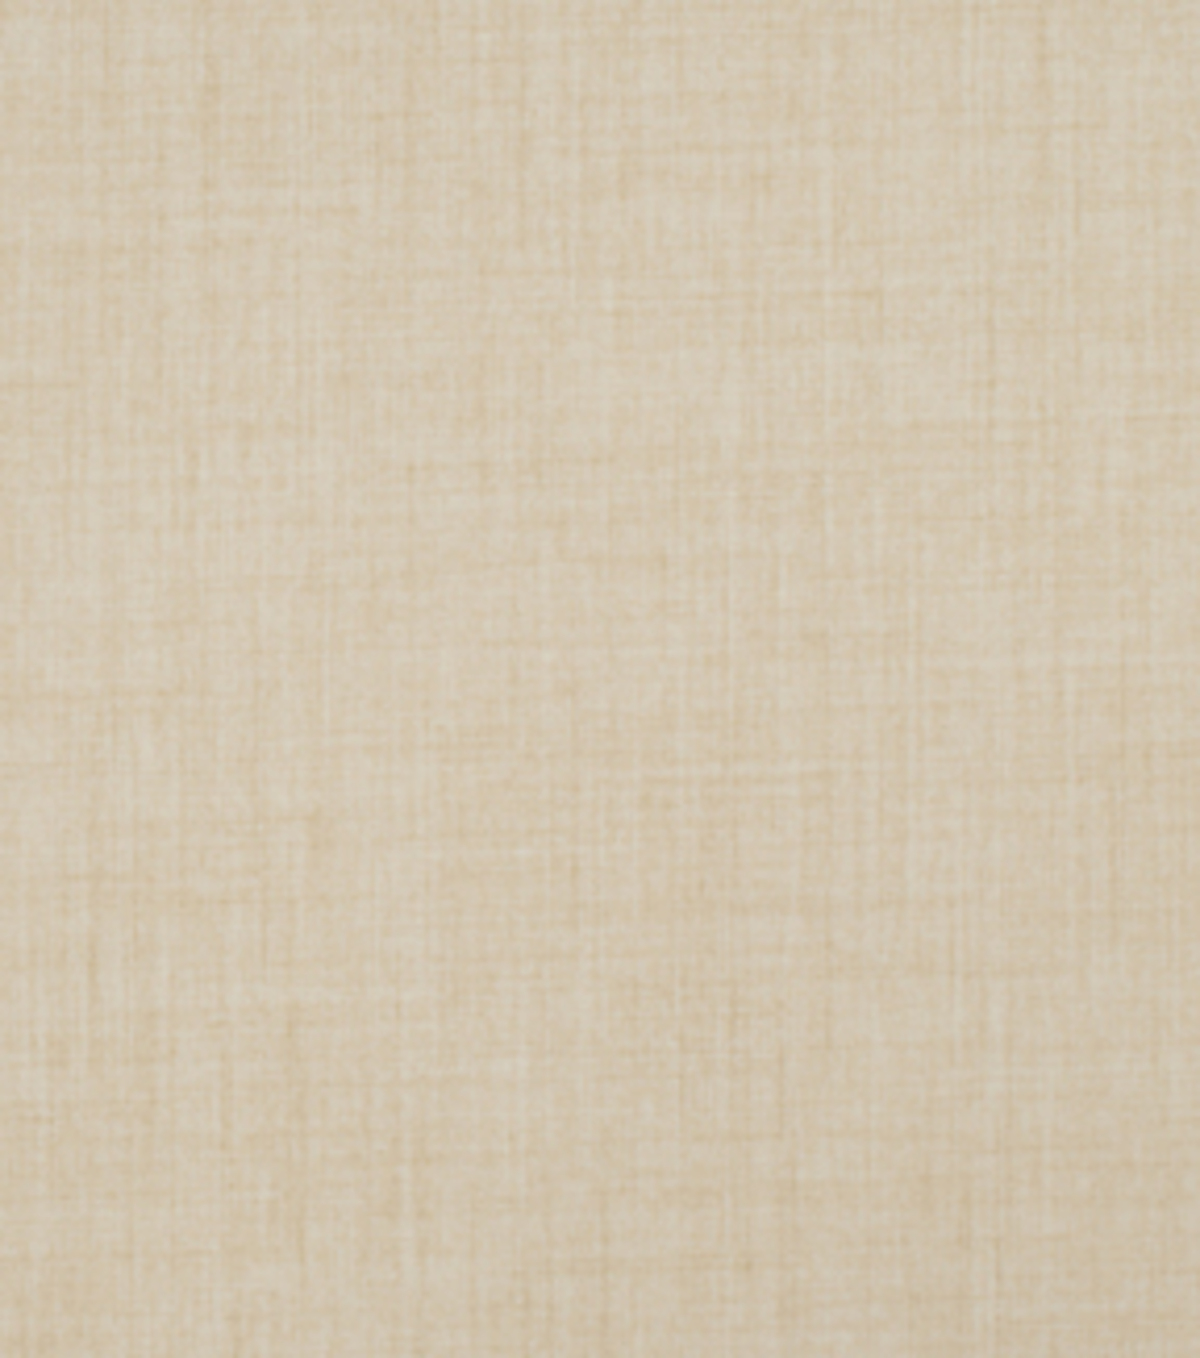 Home Decor 8\u0022x8\u0022 Fabric Swatch-Eaton Square Pause Marzipan